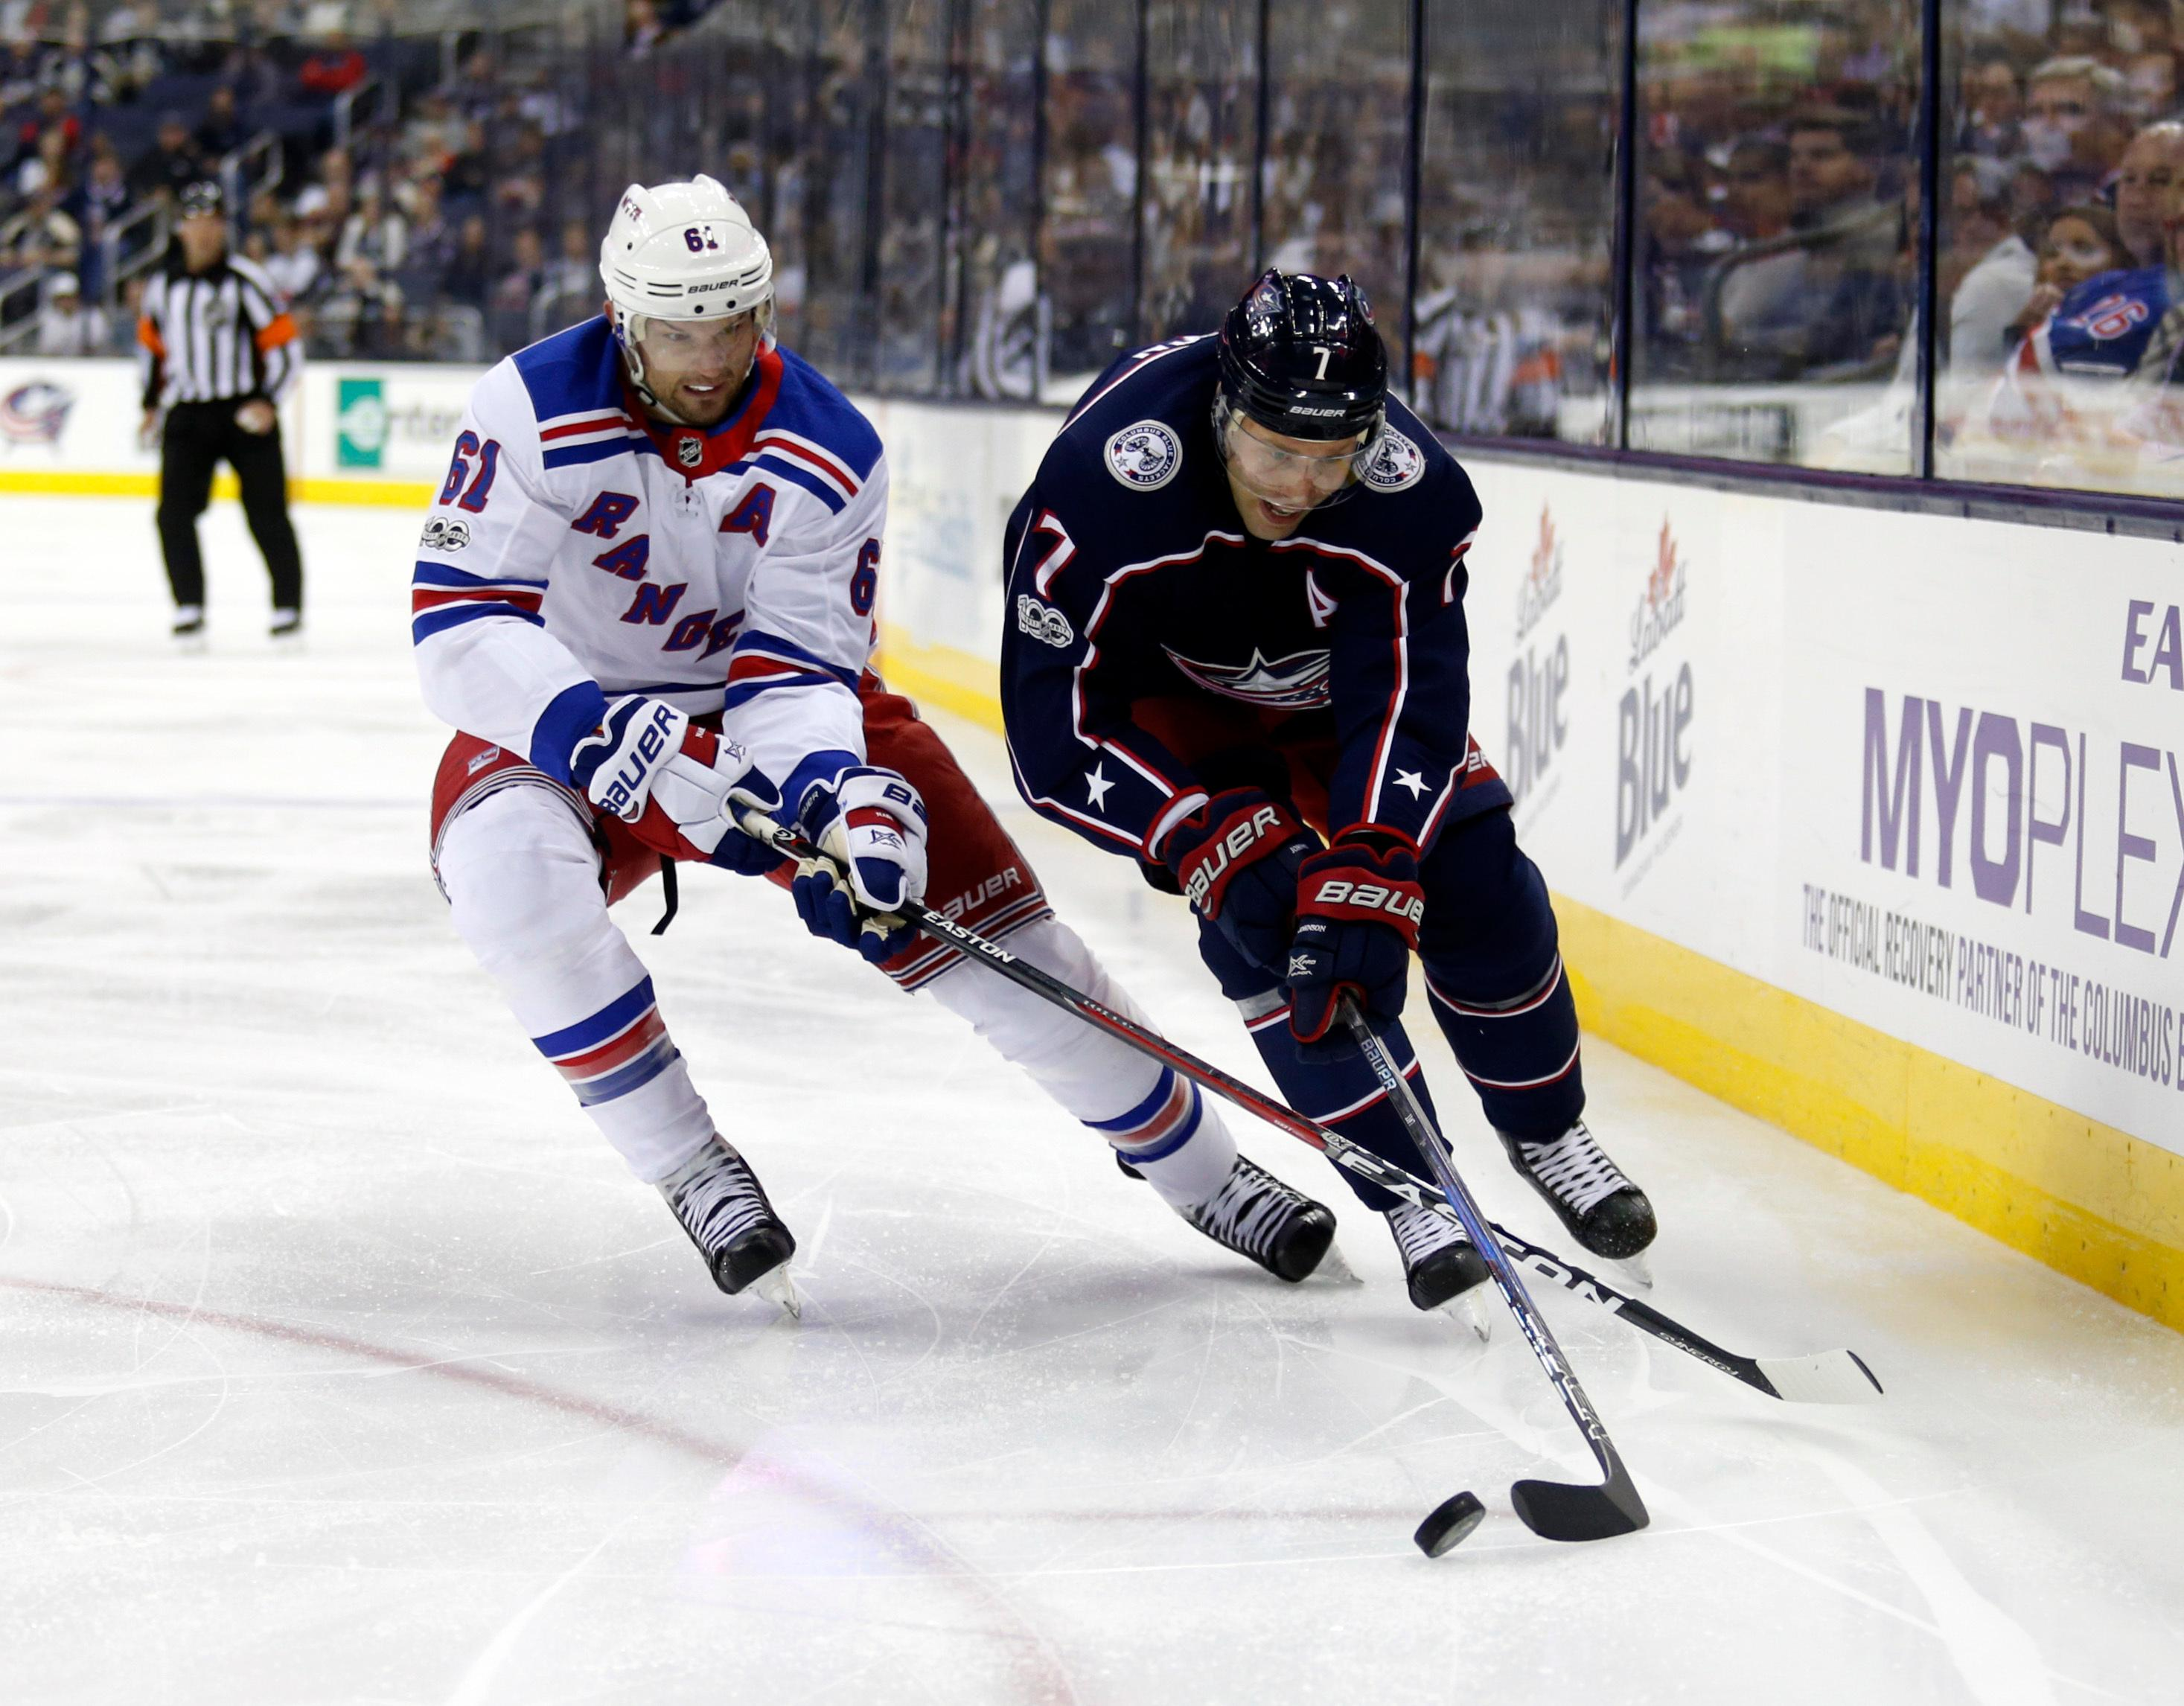 Columbus Blue Jackets defenseman Jack Johnson, right, controls the puck against New York Rangers forward Rick Nash during the second period of an NHL hockey game in Columbus, Ohio, Friday, Oct. 13, 2017. (AP Photo/Paul Vernon)